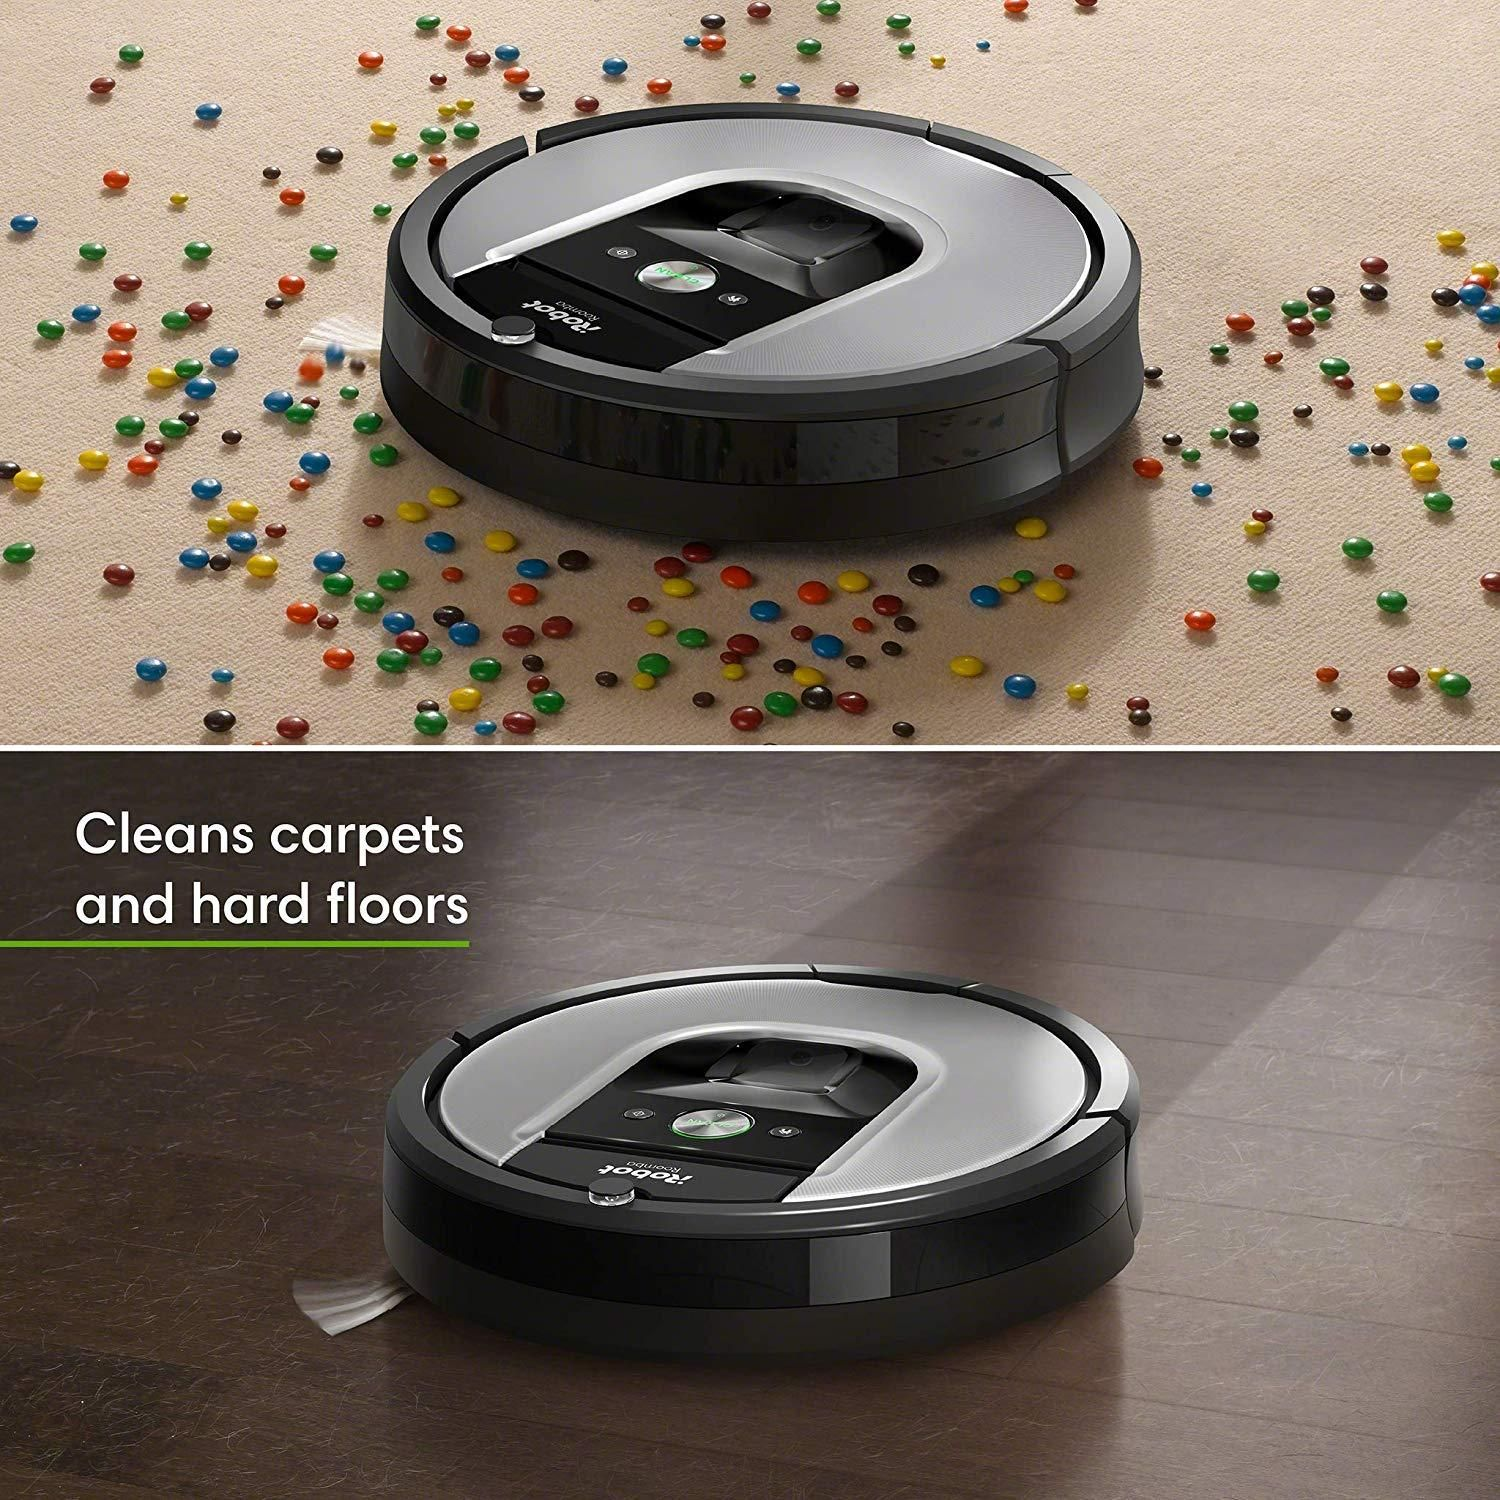 Irobot Roomba 960 Wi Fi Connected Robot Vacuum With Auto Charging